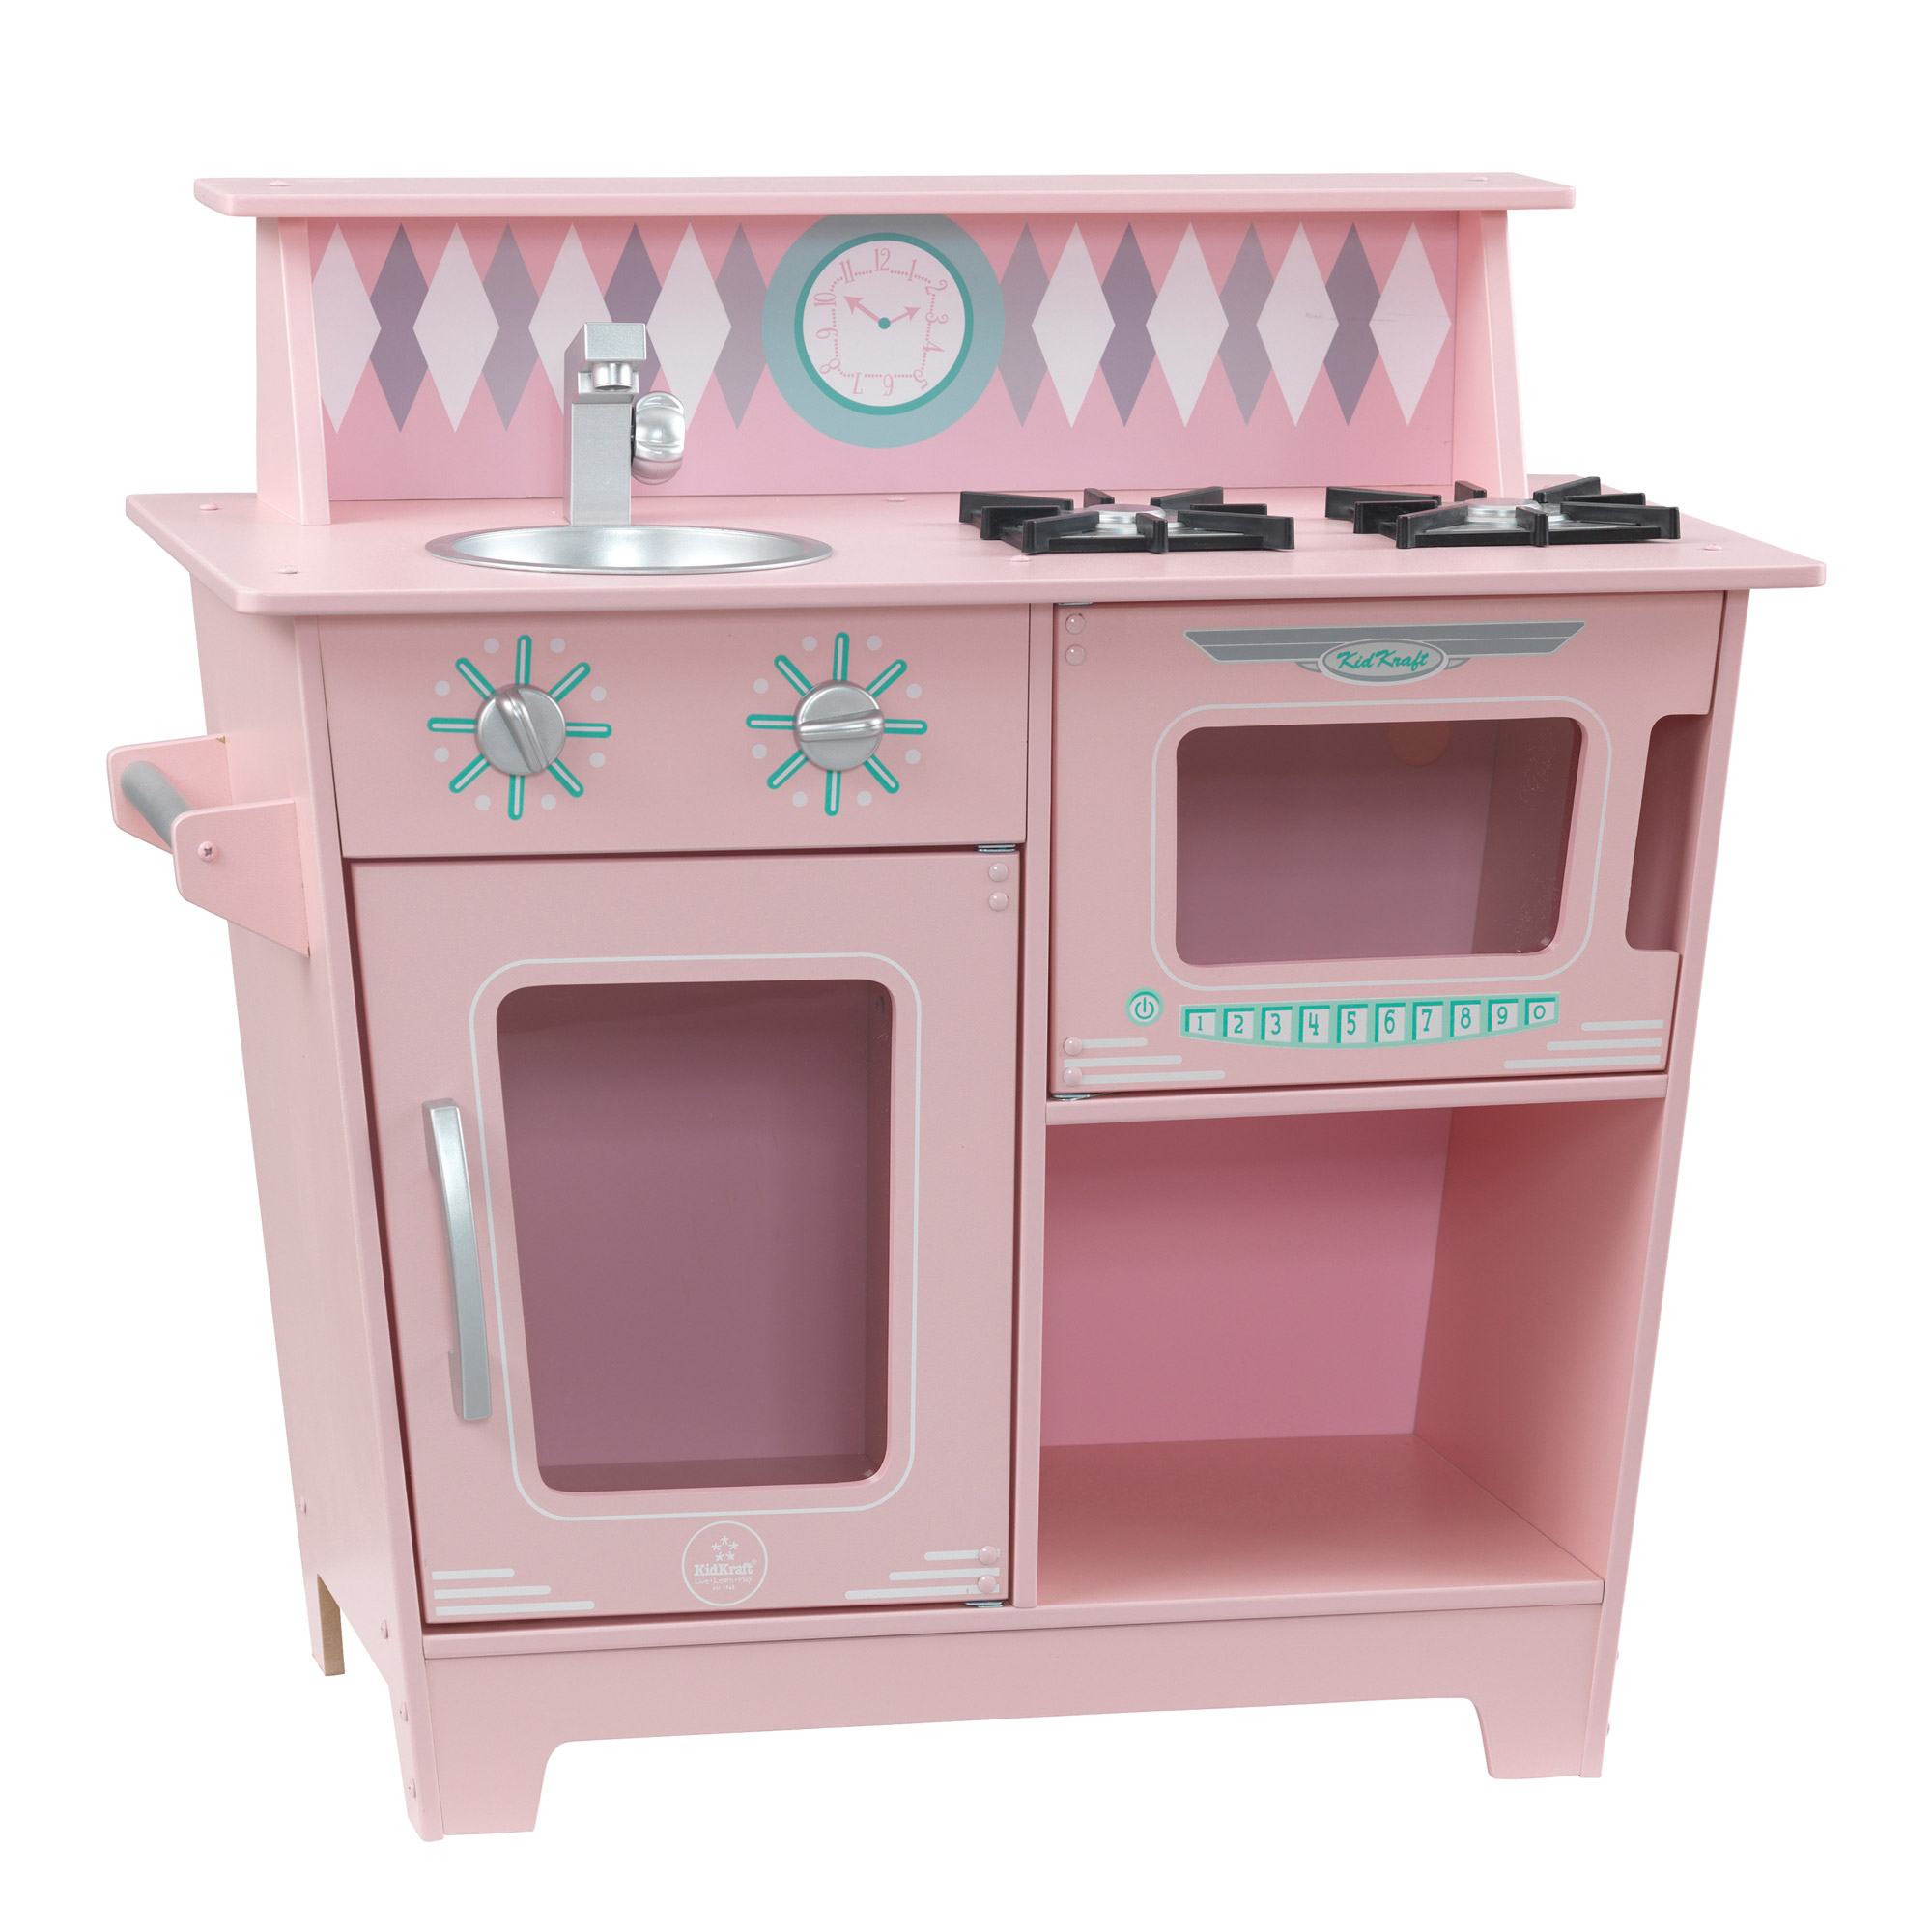 Superieur KidKraft Classic Wooden Pretend Play Cooking Kitchenette Toy Set For Kids,  Pink